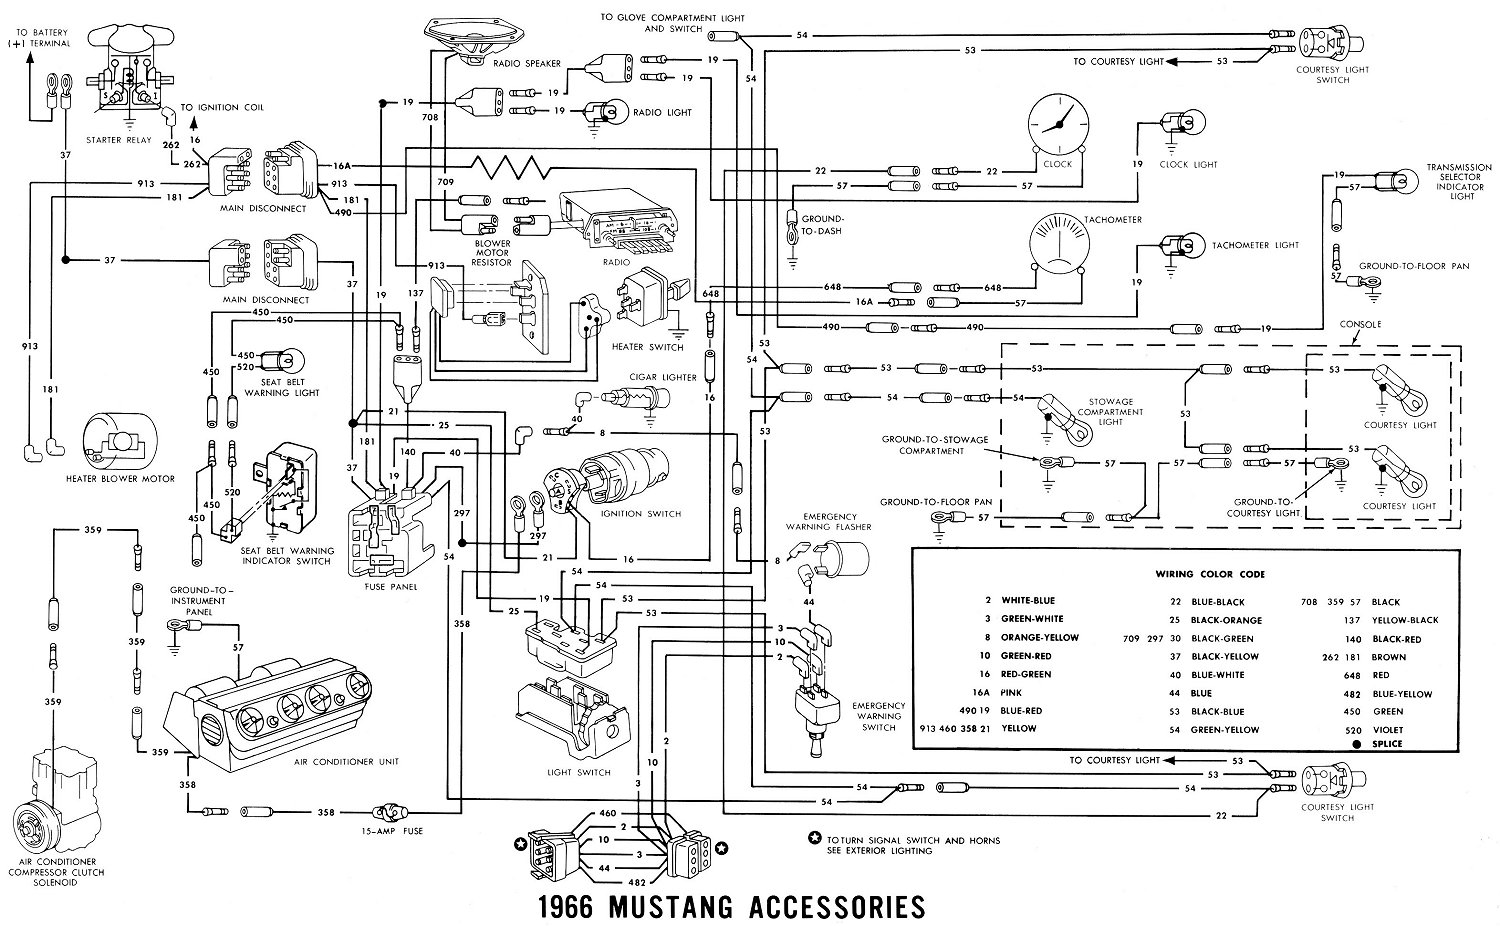 ford mustang diagram wiring diagram data rh 19 1 8 reisen fuer meister de